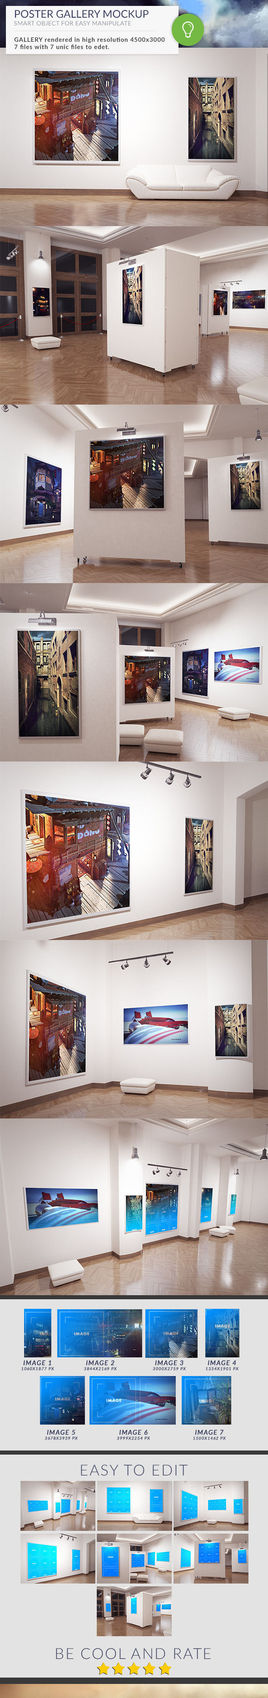 Gallery Posters MOCK-UP